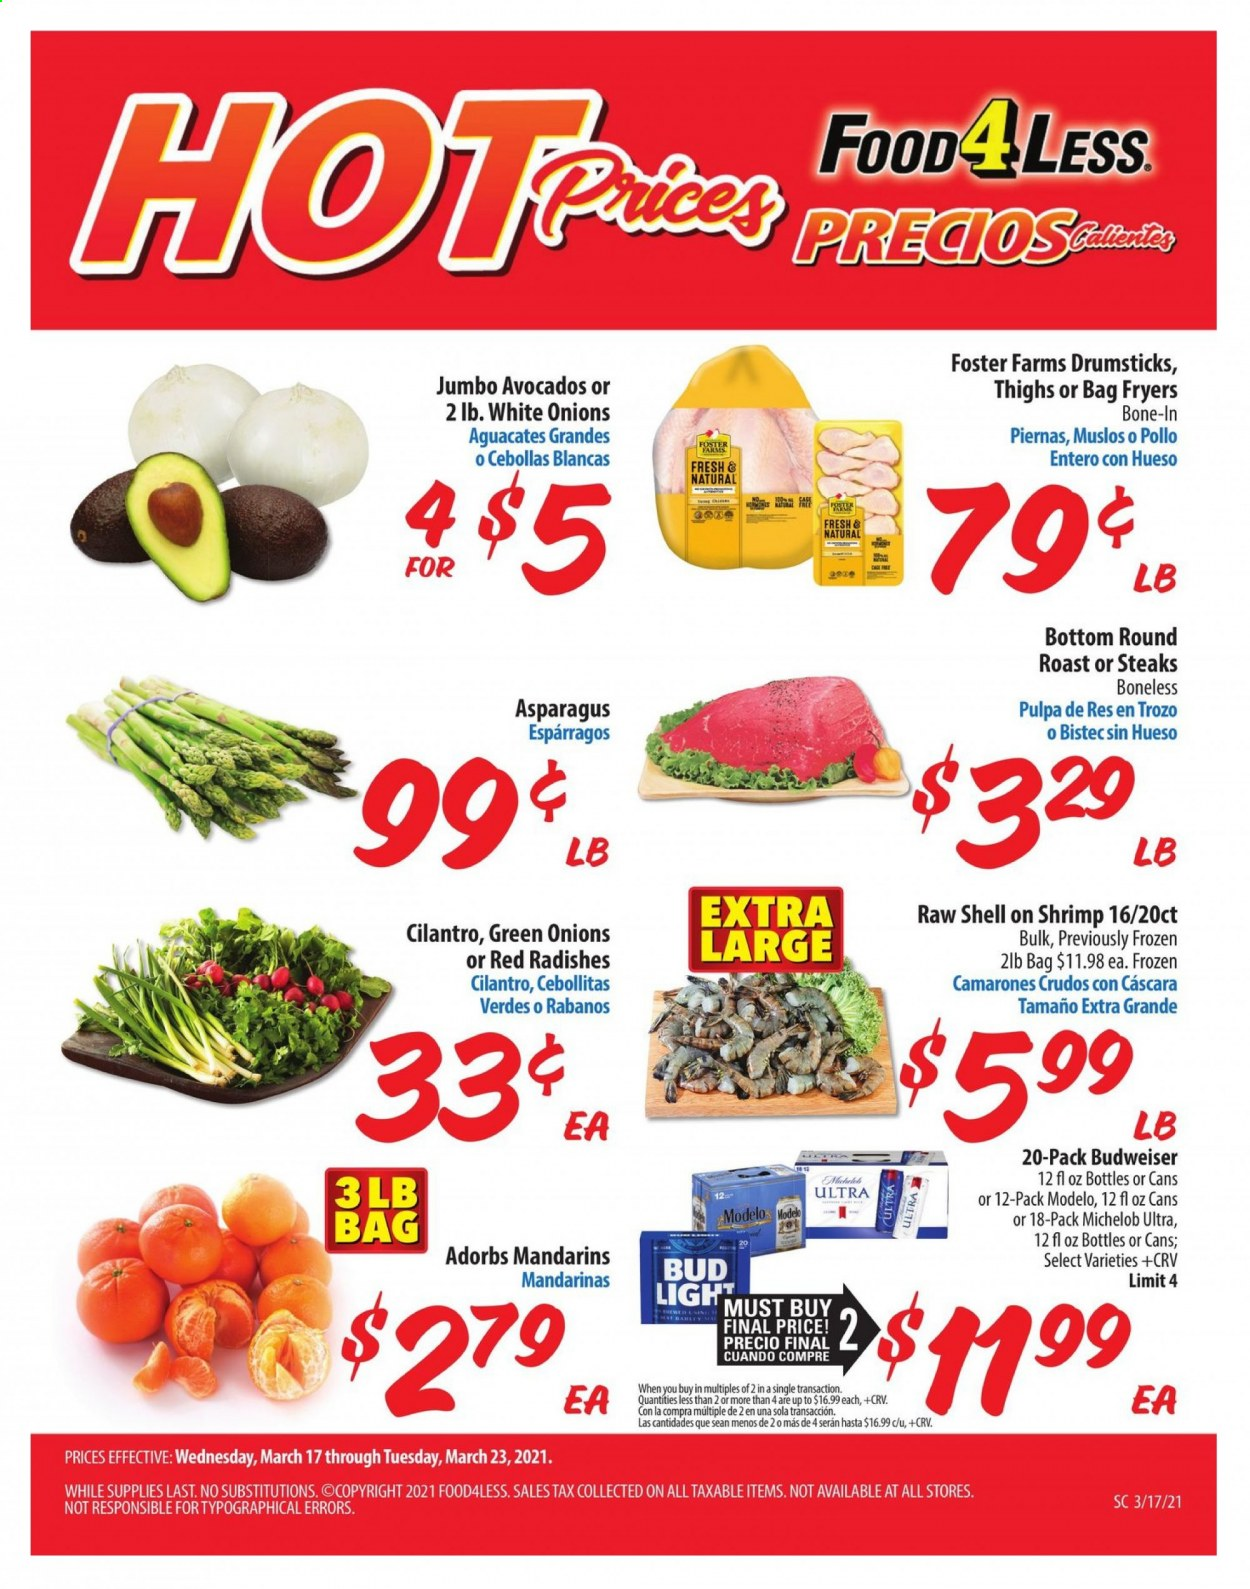 Food 4 Less Flyer - 03.17.2021 - 03.23.2021 - Sales products - Budweiser, Michelob, shrimps, mandarines, cilantro, beer, Bud Light, Modelo, beef meat, steak, round roast, cage. Page 1.